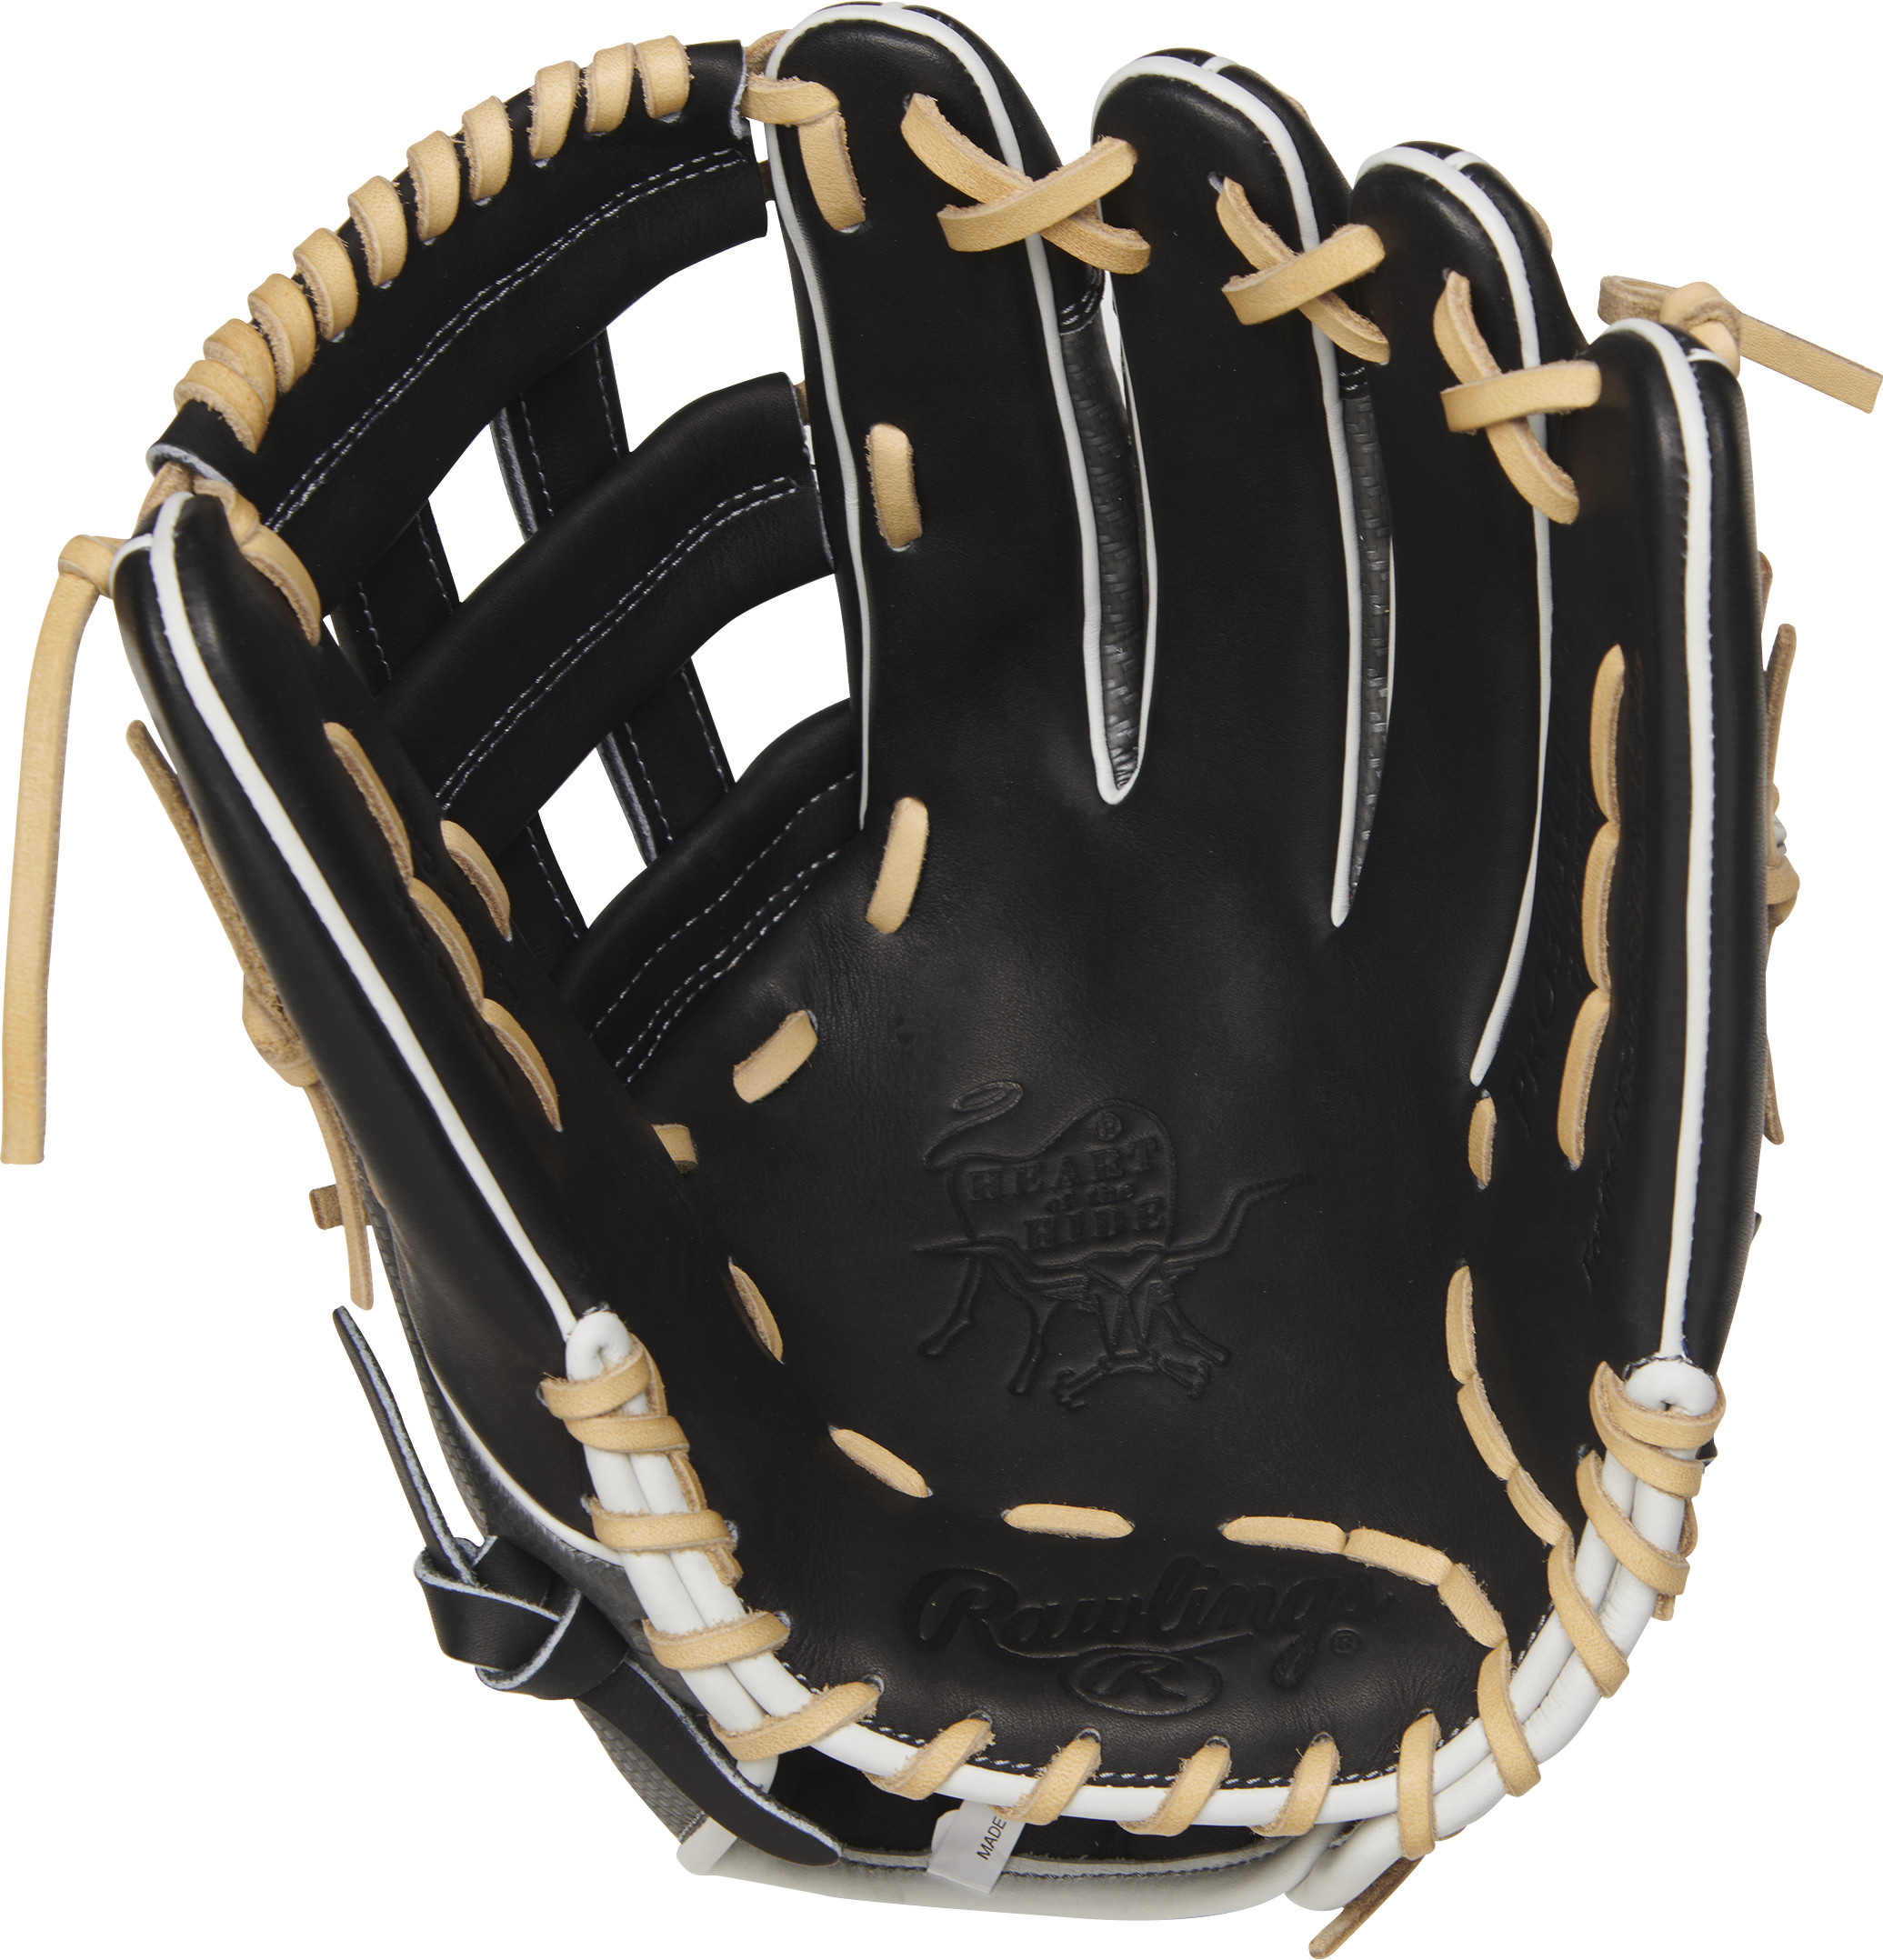 http://www.bestbatdeals.com/images/gloves/rawlings/PRO3039-6BCF-1.jpg